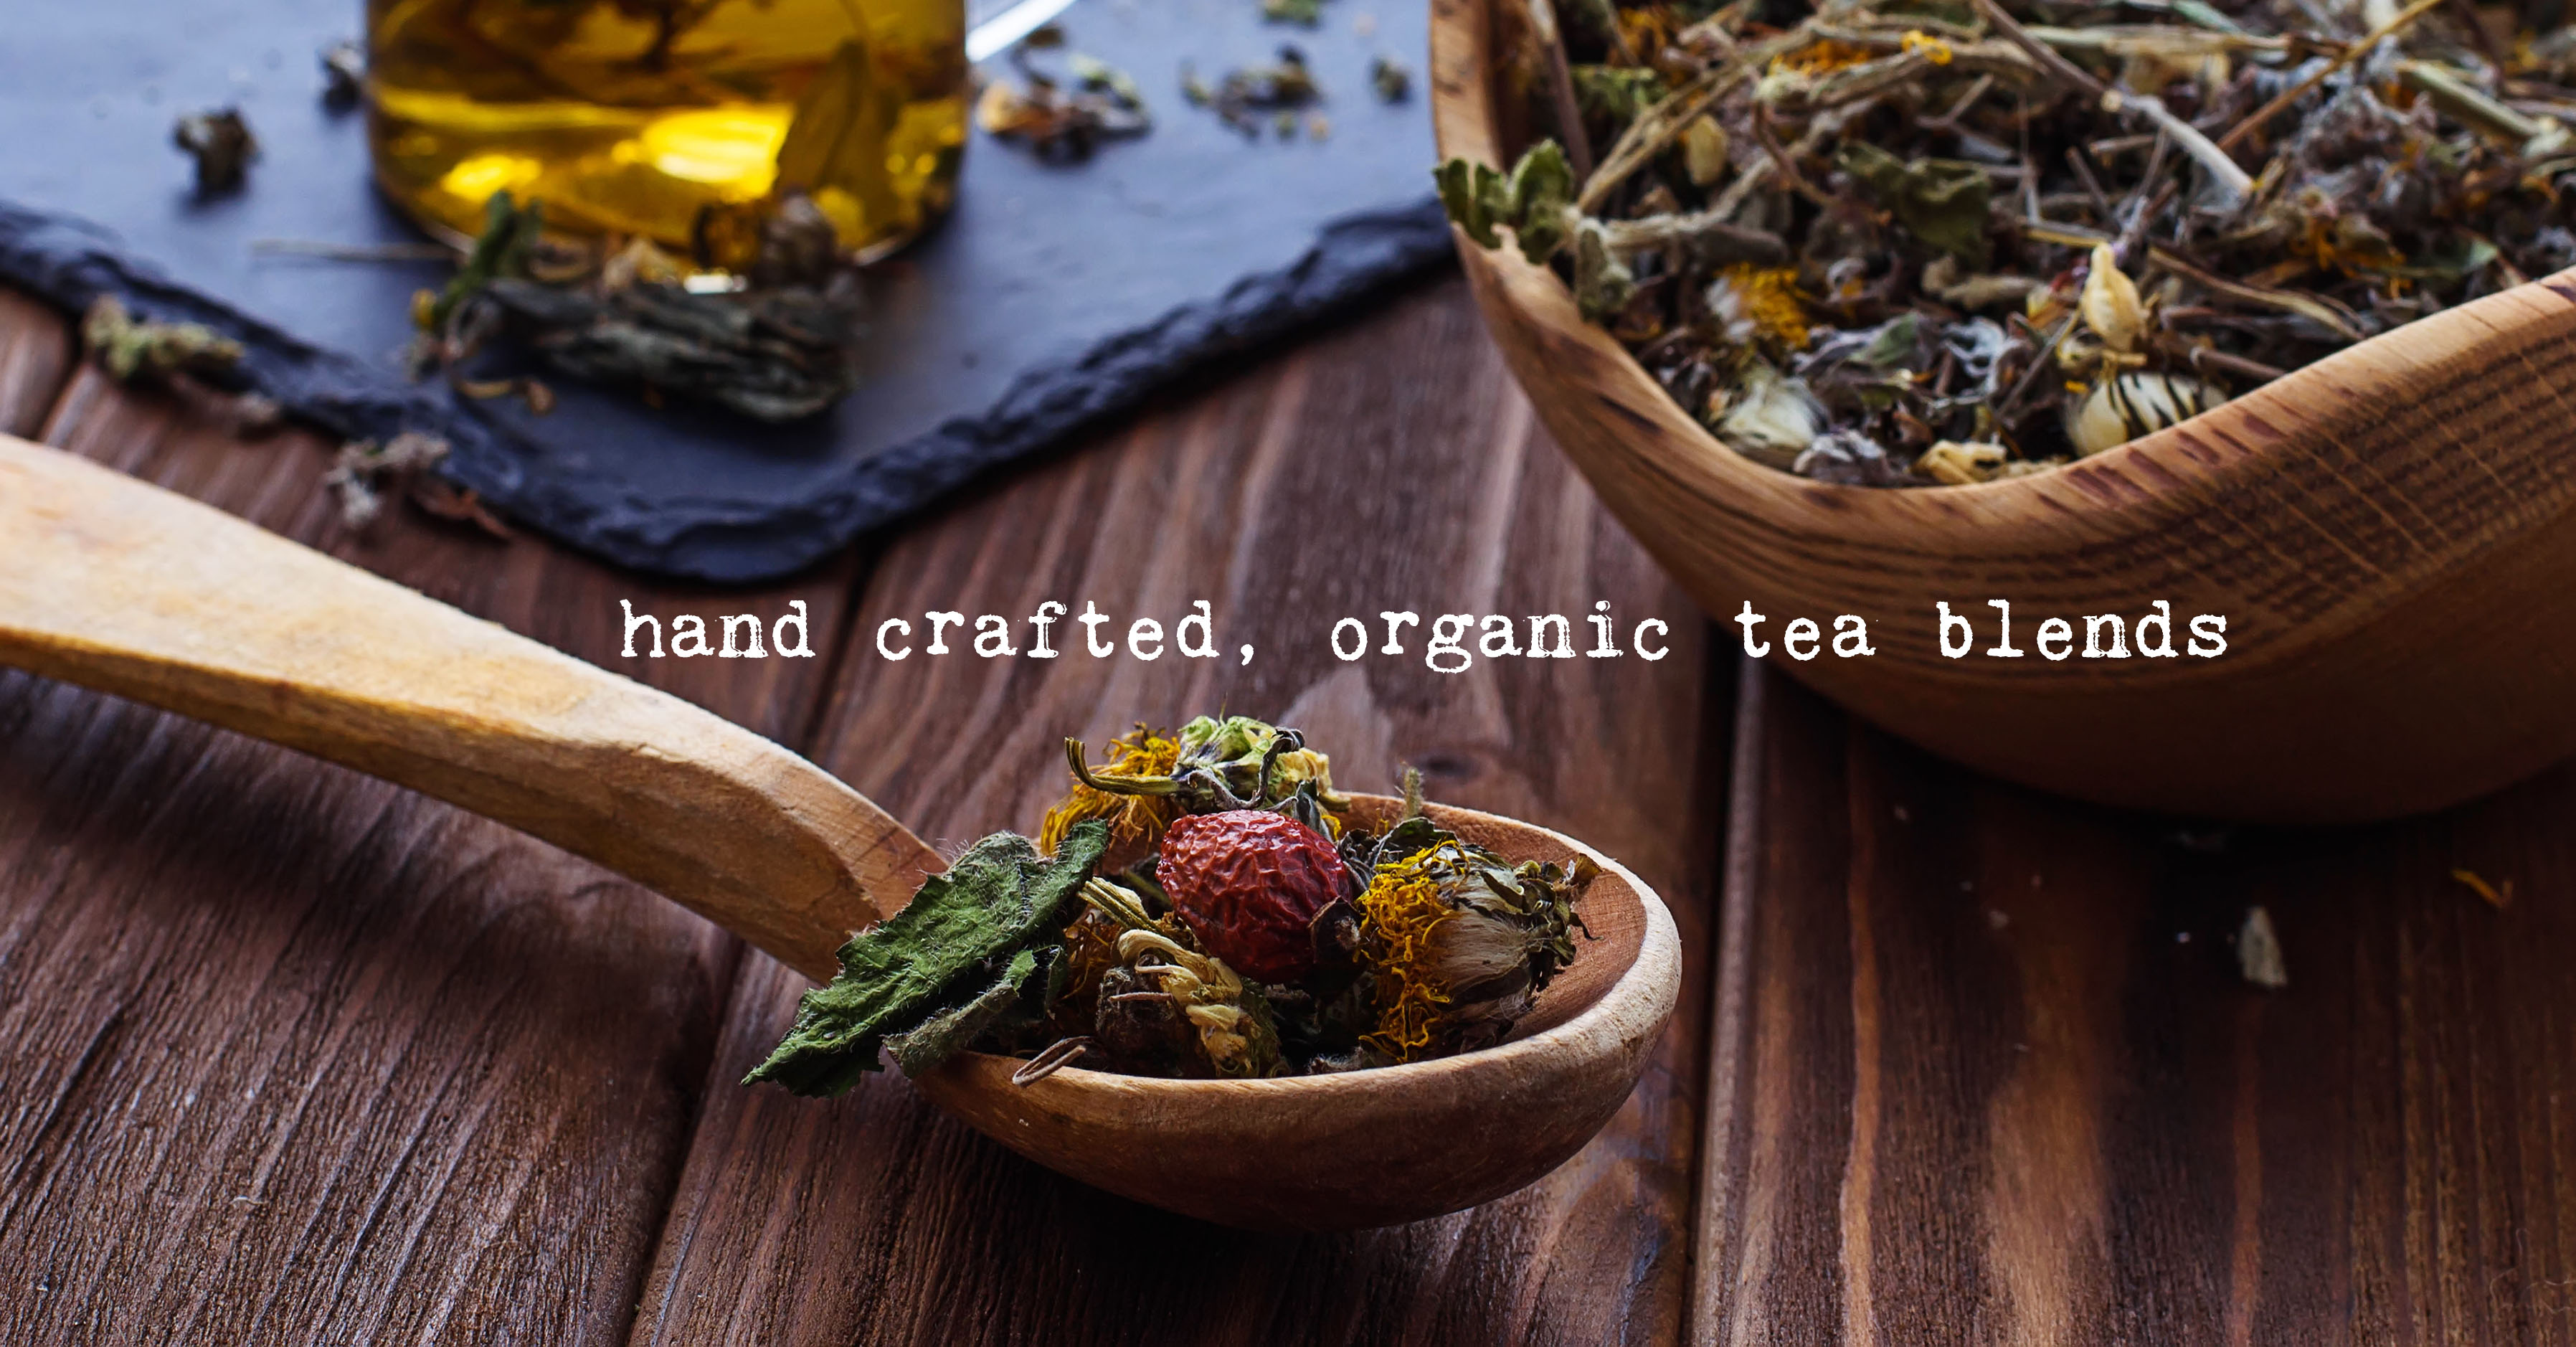 1770 mercantile Organic tea blends